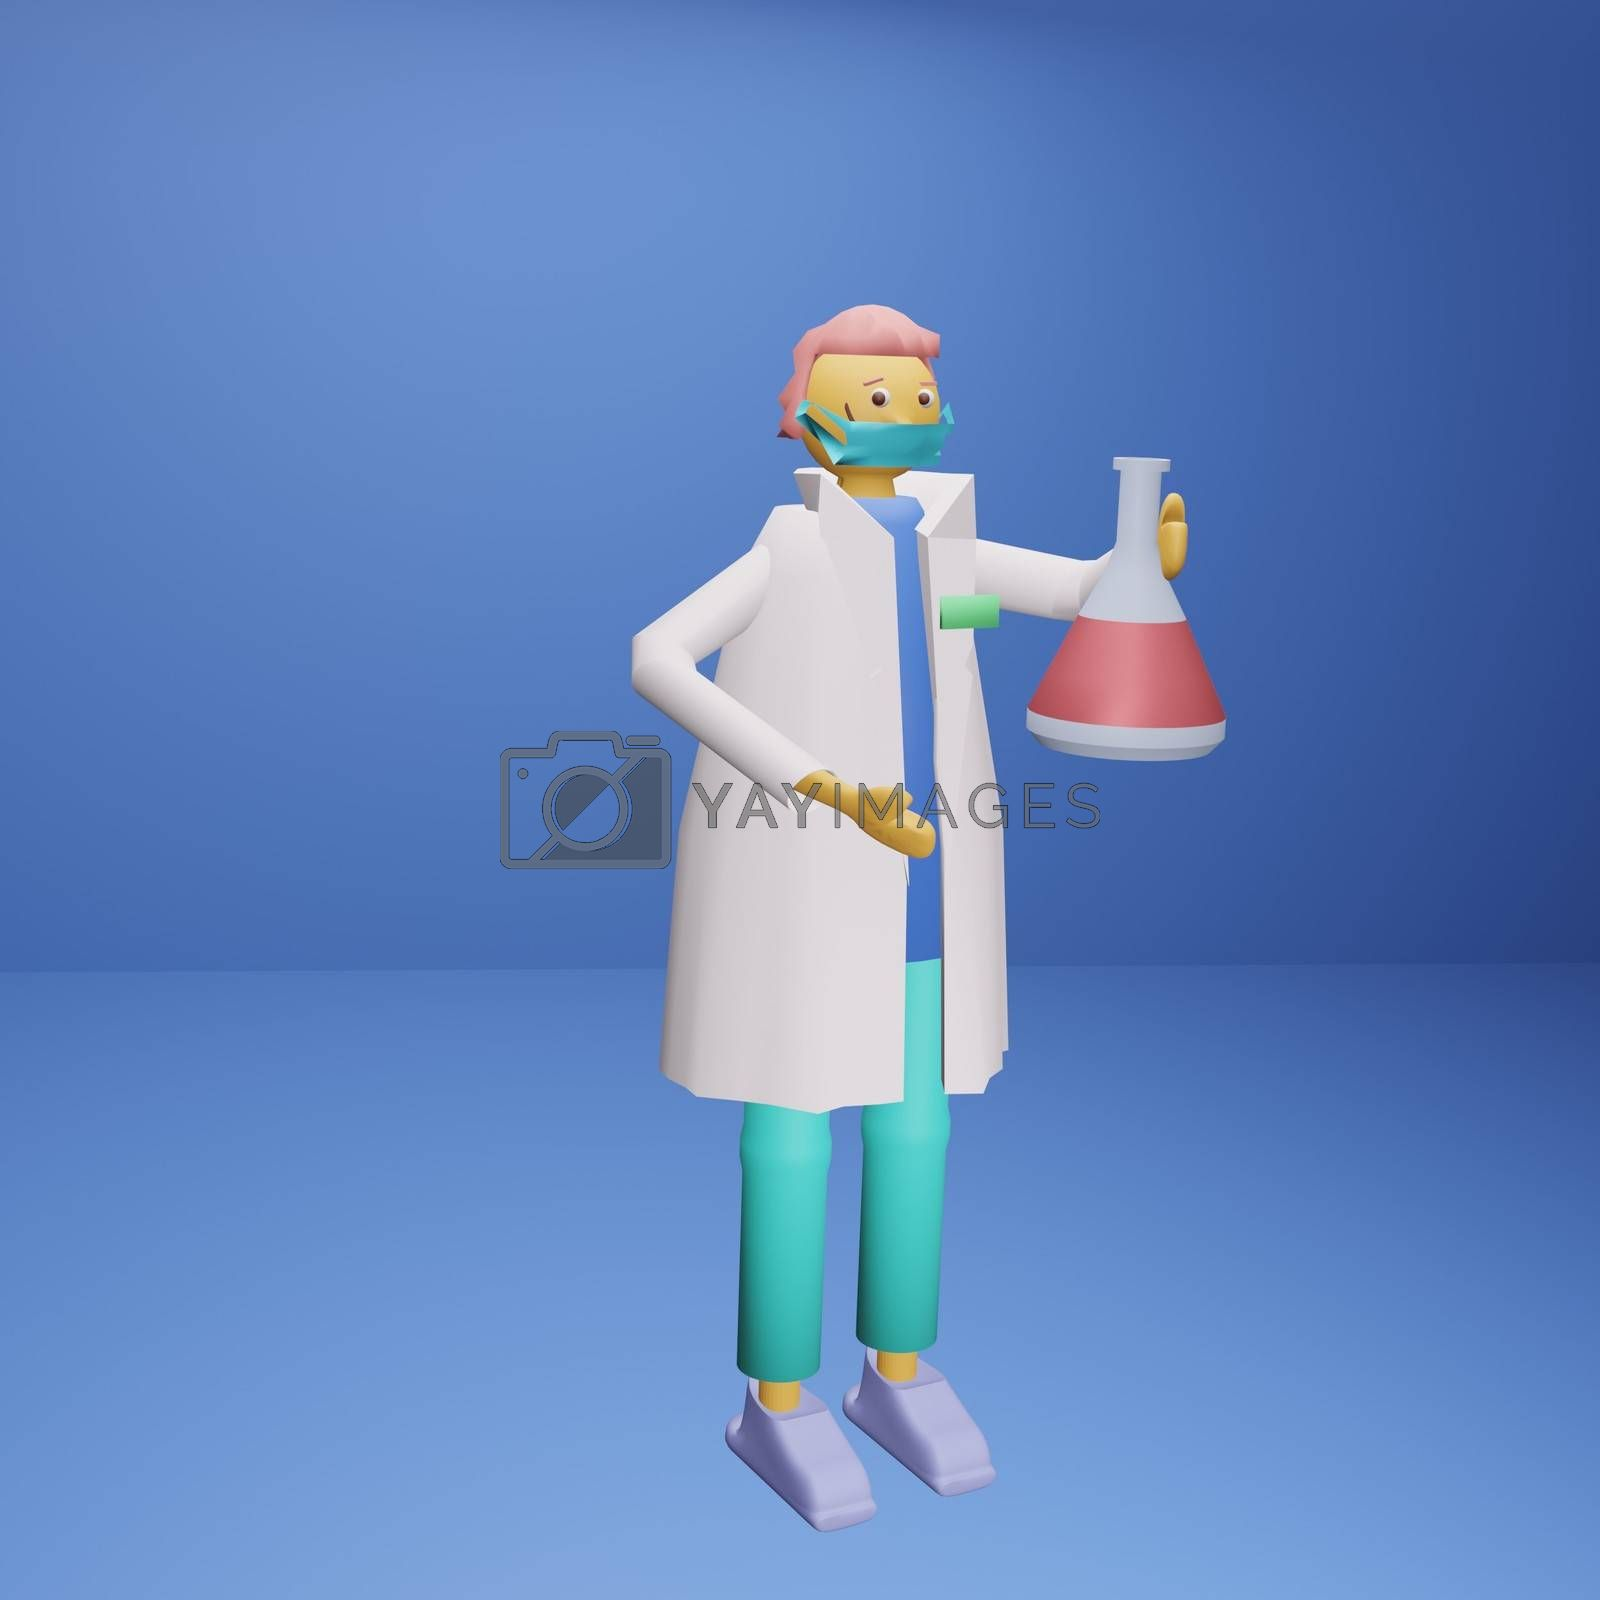 Medical scientist with a medical mask holding a glass test tube with liquid medicine or vaccine for the virus. 3D render illustration, volumetric image.